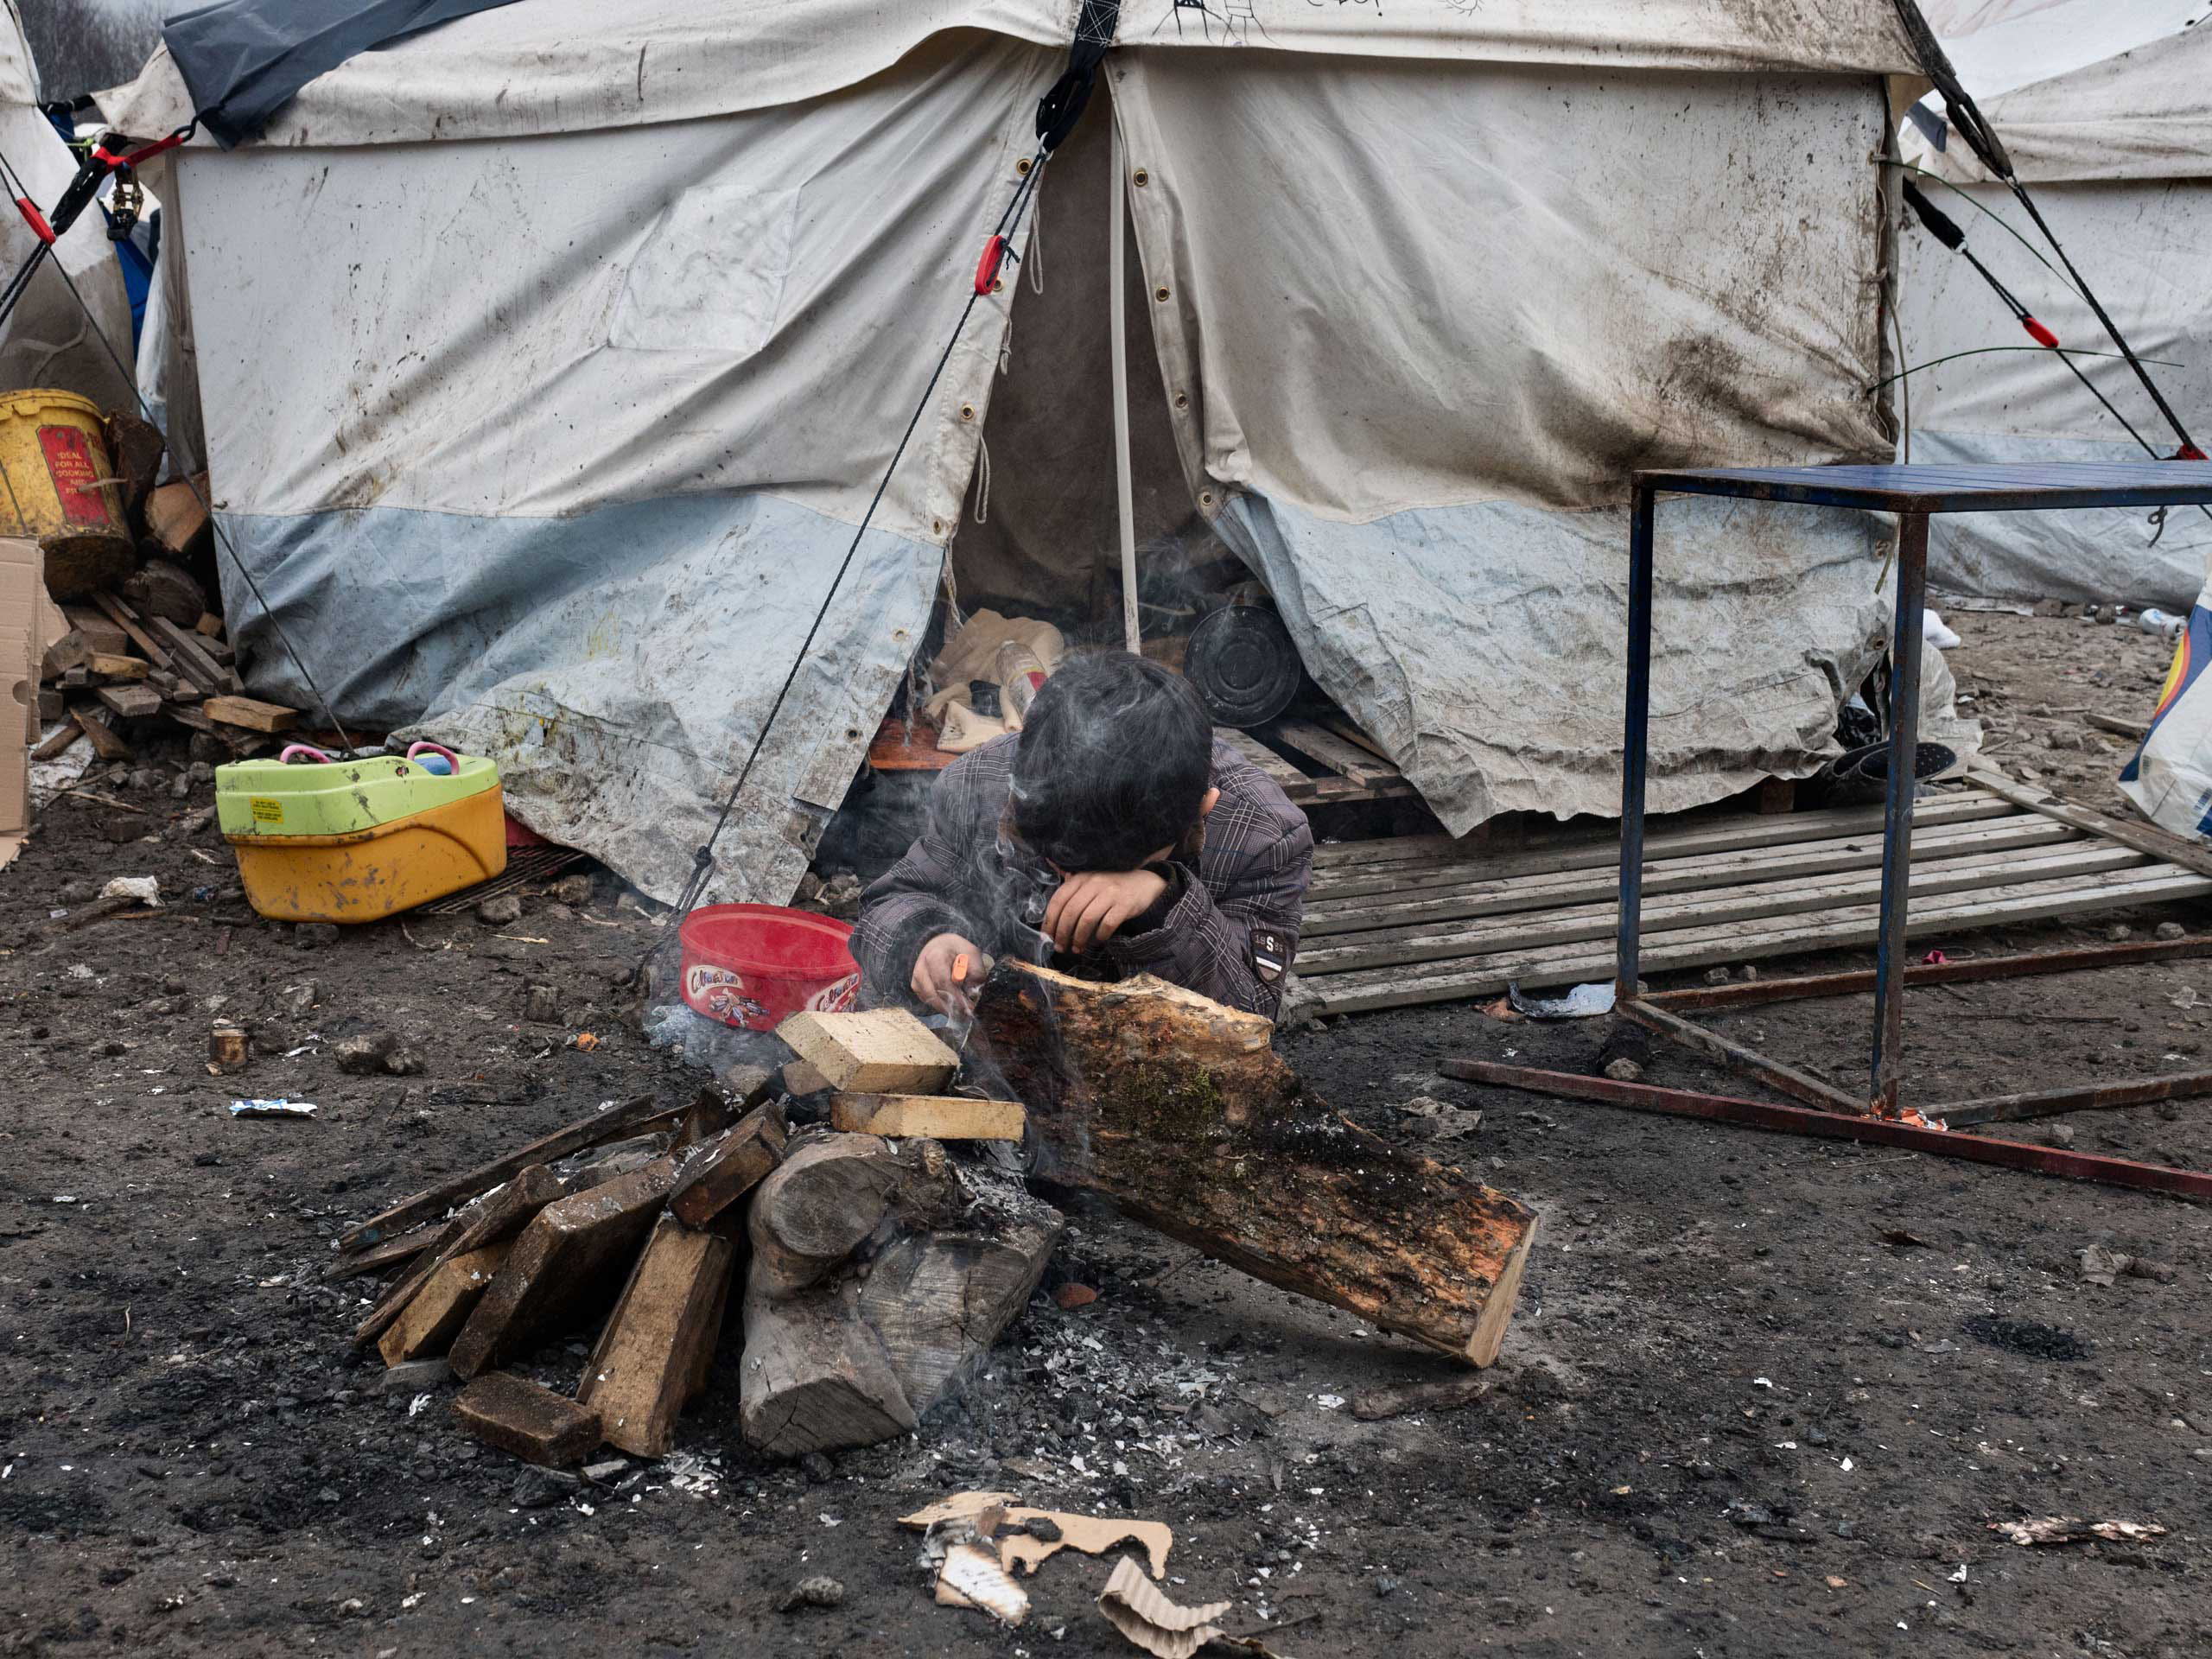 The refugee camp near Dunkirk, Grande-Synthe, which is accommodating over 2,500 refugees, mostly families from Kurdistan, Jan. 20, 2016